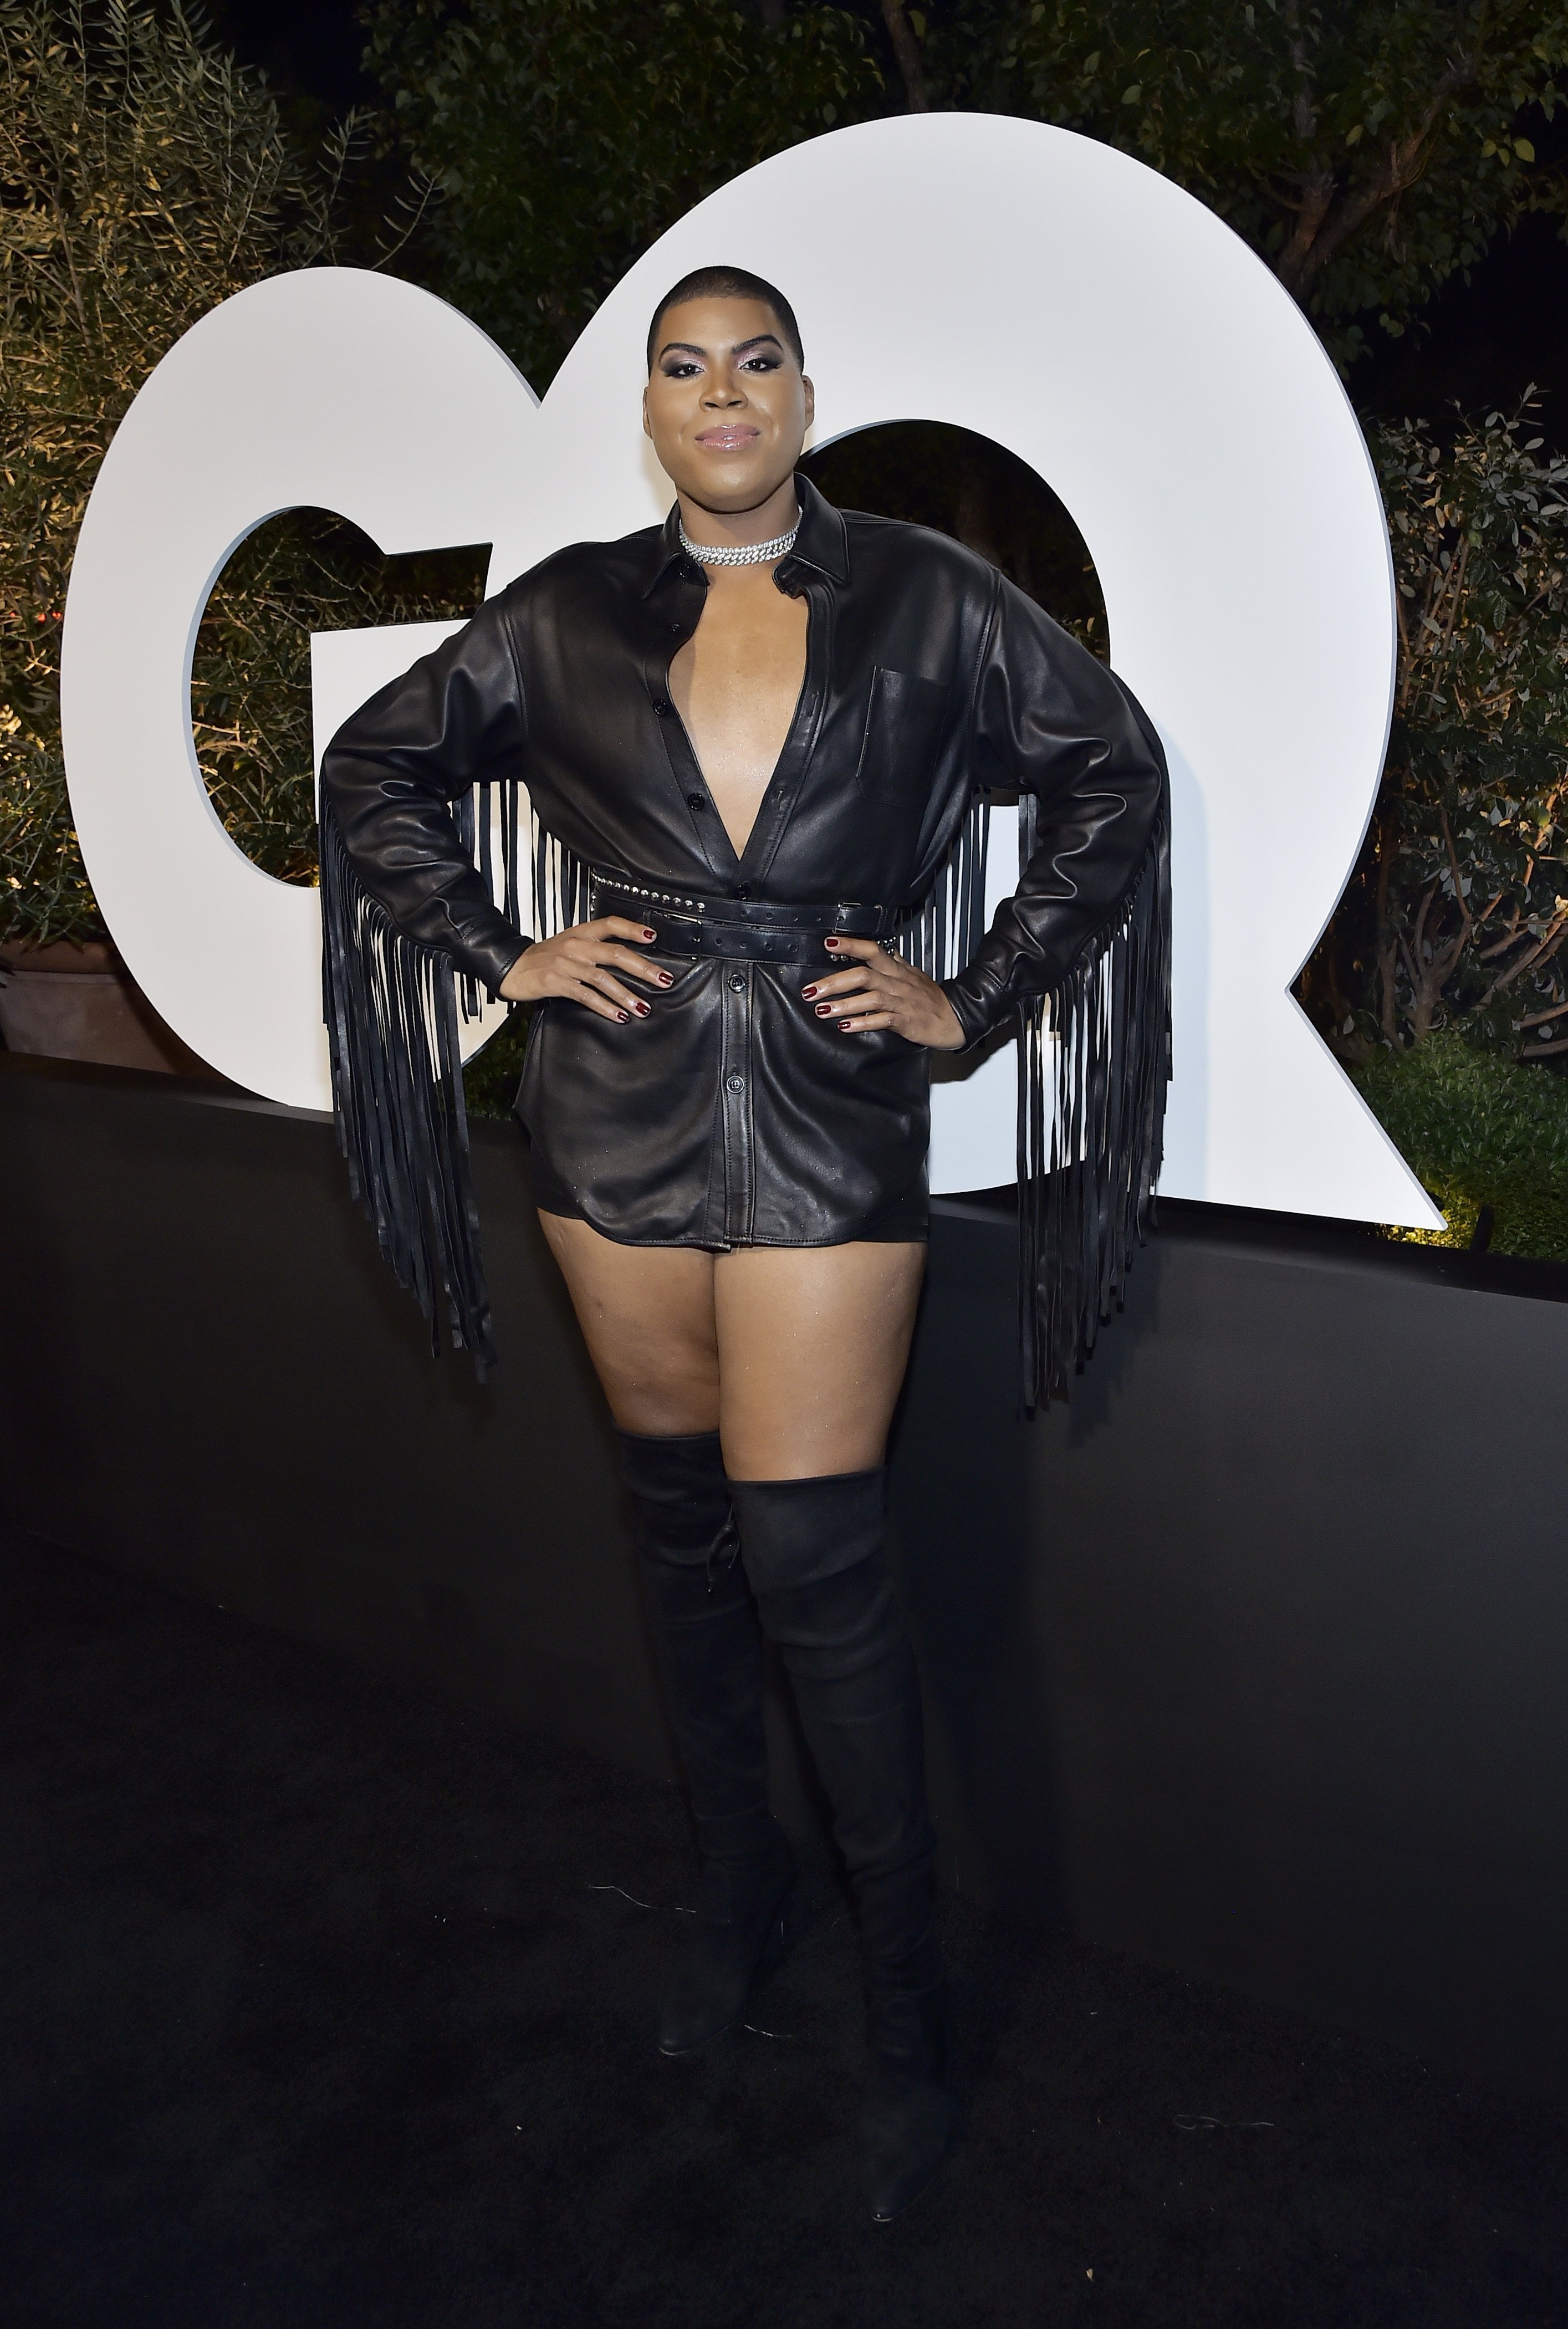 EJ Johnson at the 2019 GQ Men Of The Year event on December 05, 2019 in West Hollywood, California | Photo: Getty Images